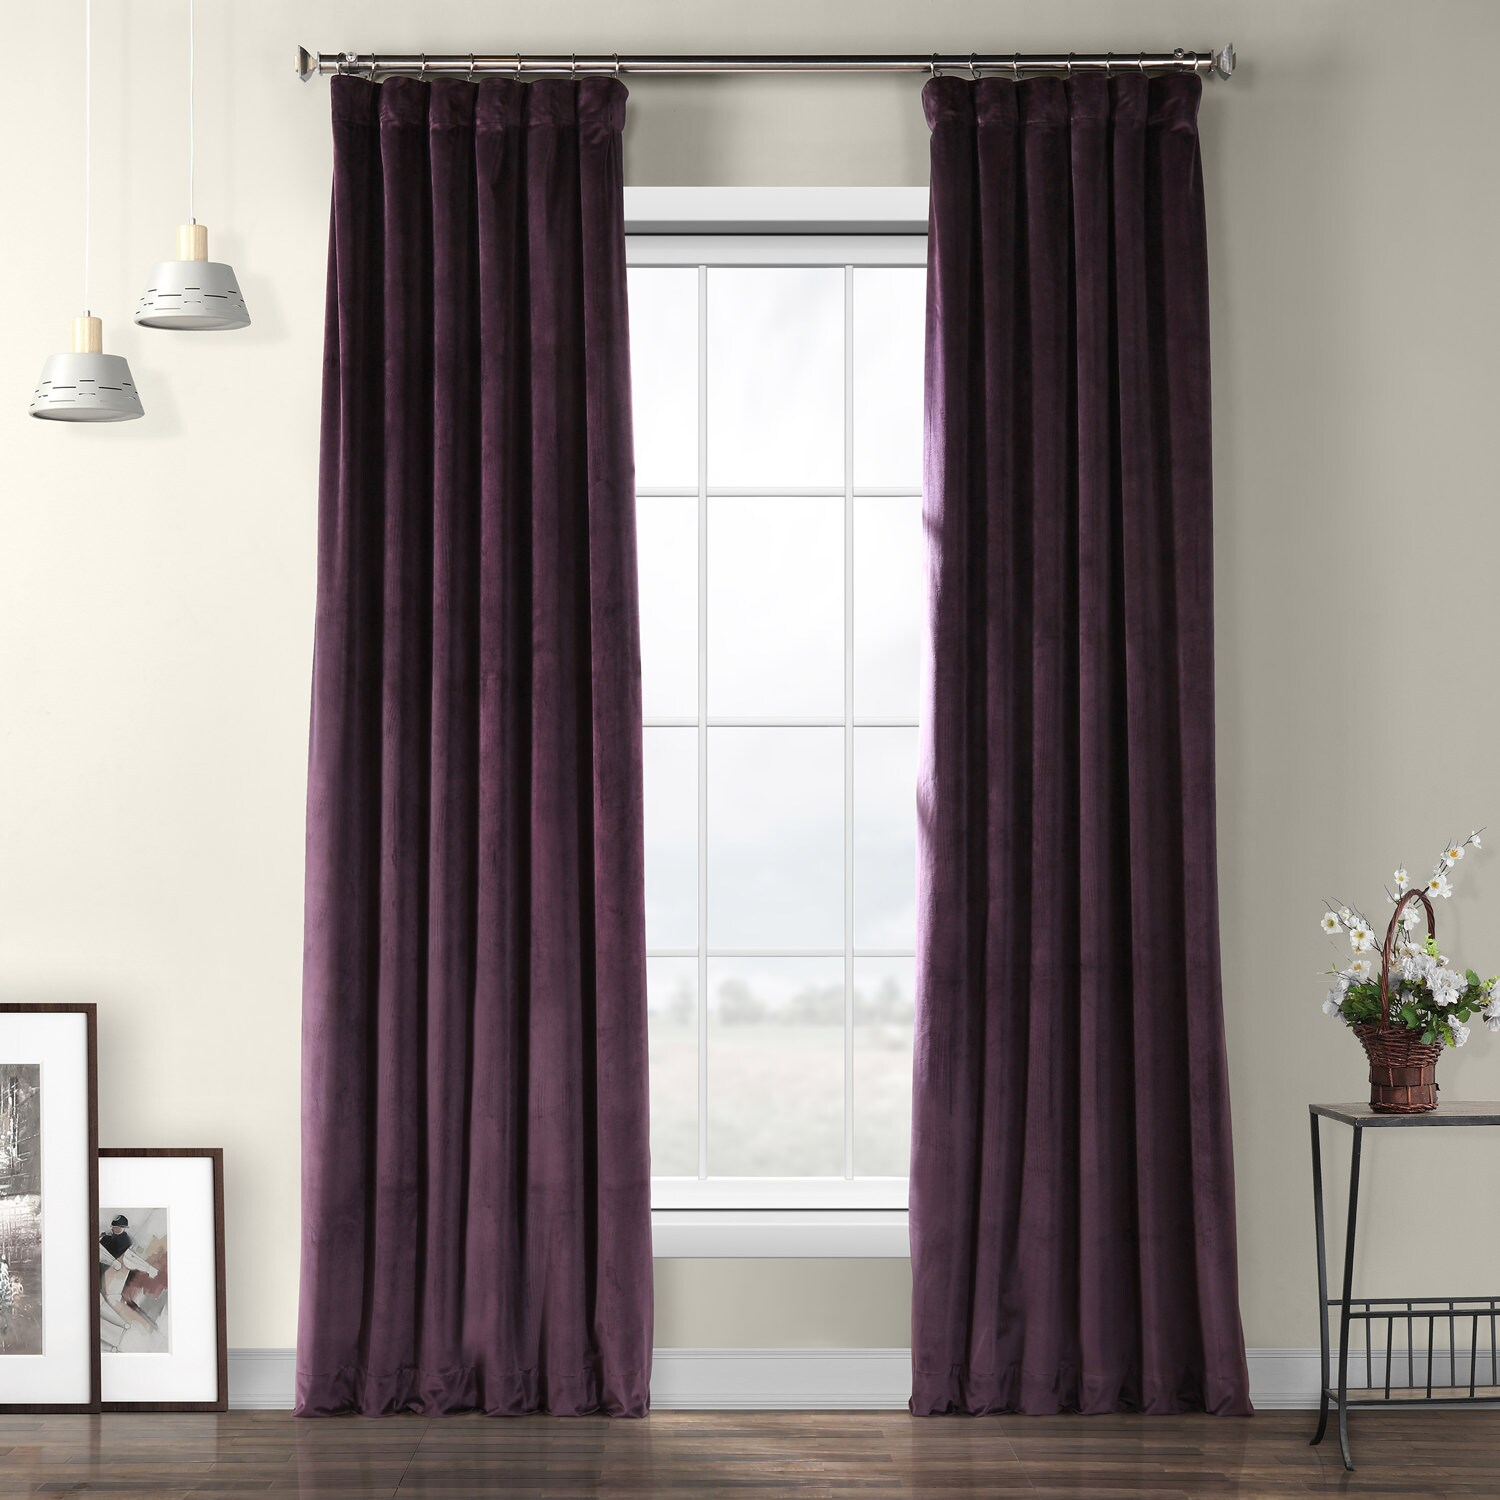 Double Wide Curtain Panels Custom Curtains Custom Drapes Half Price Drapes